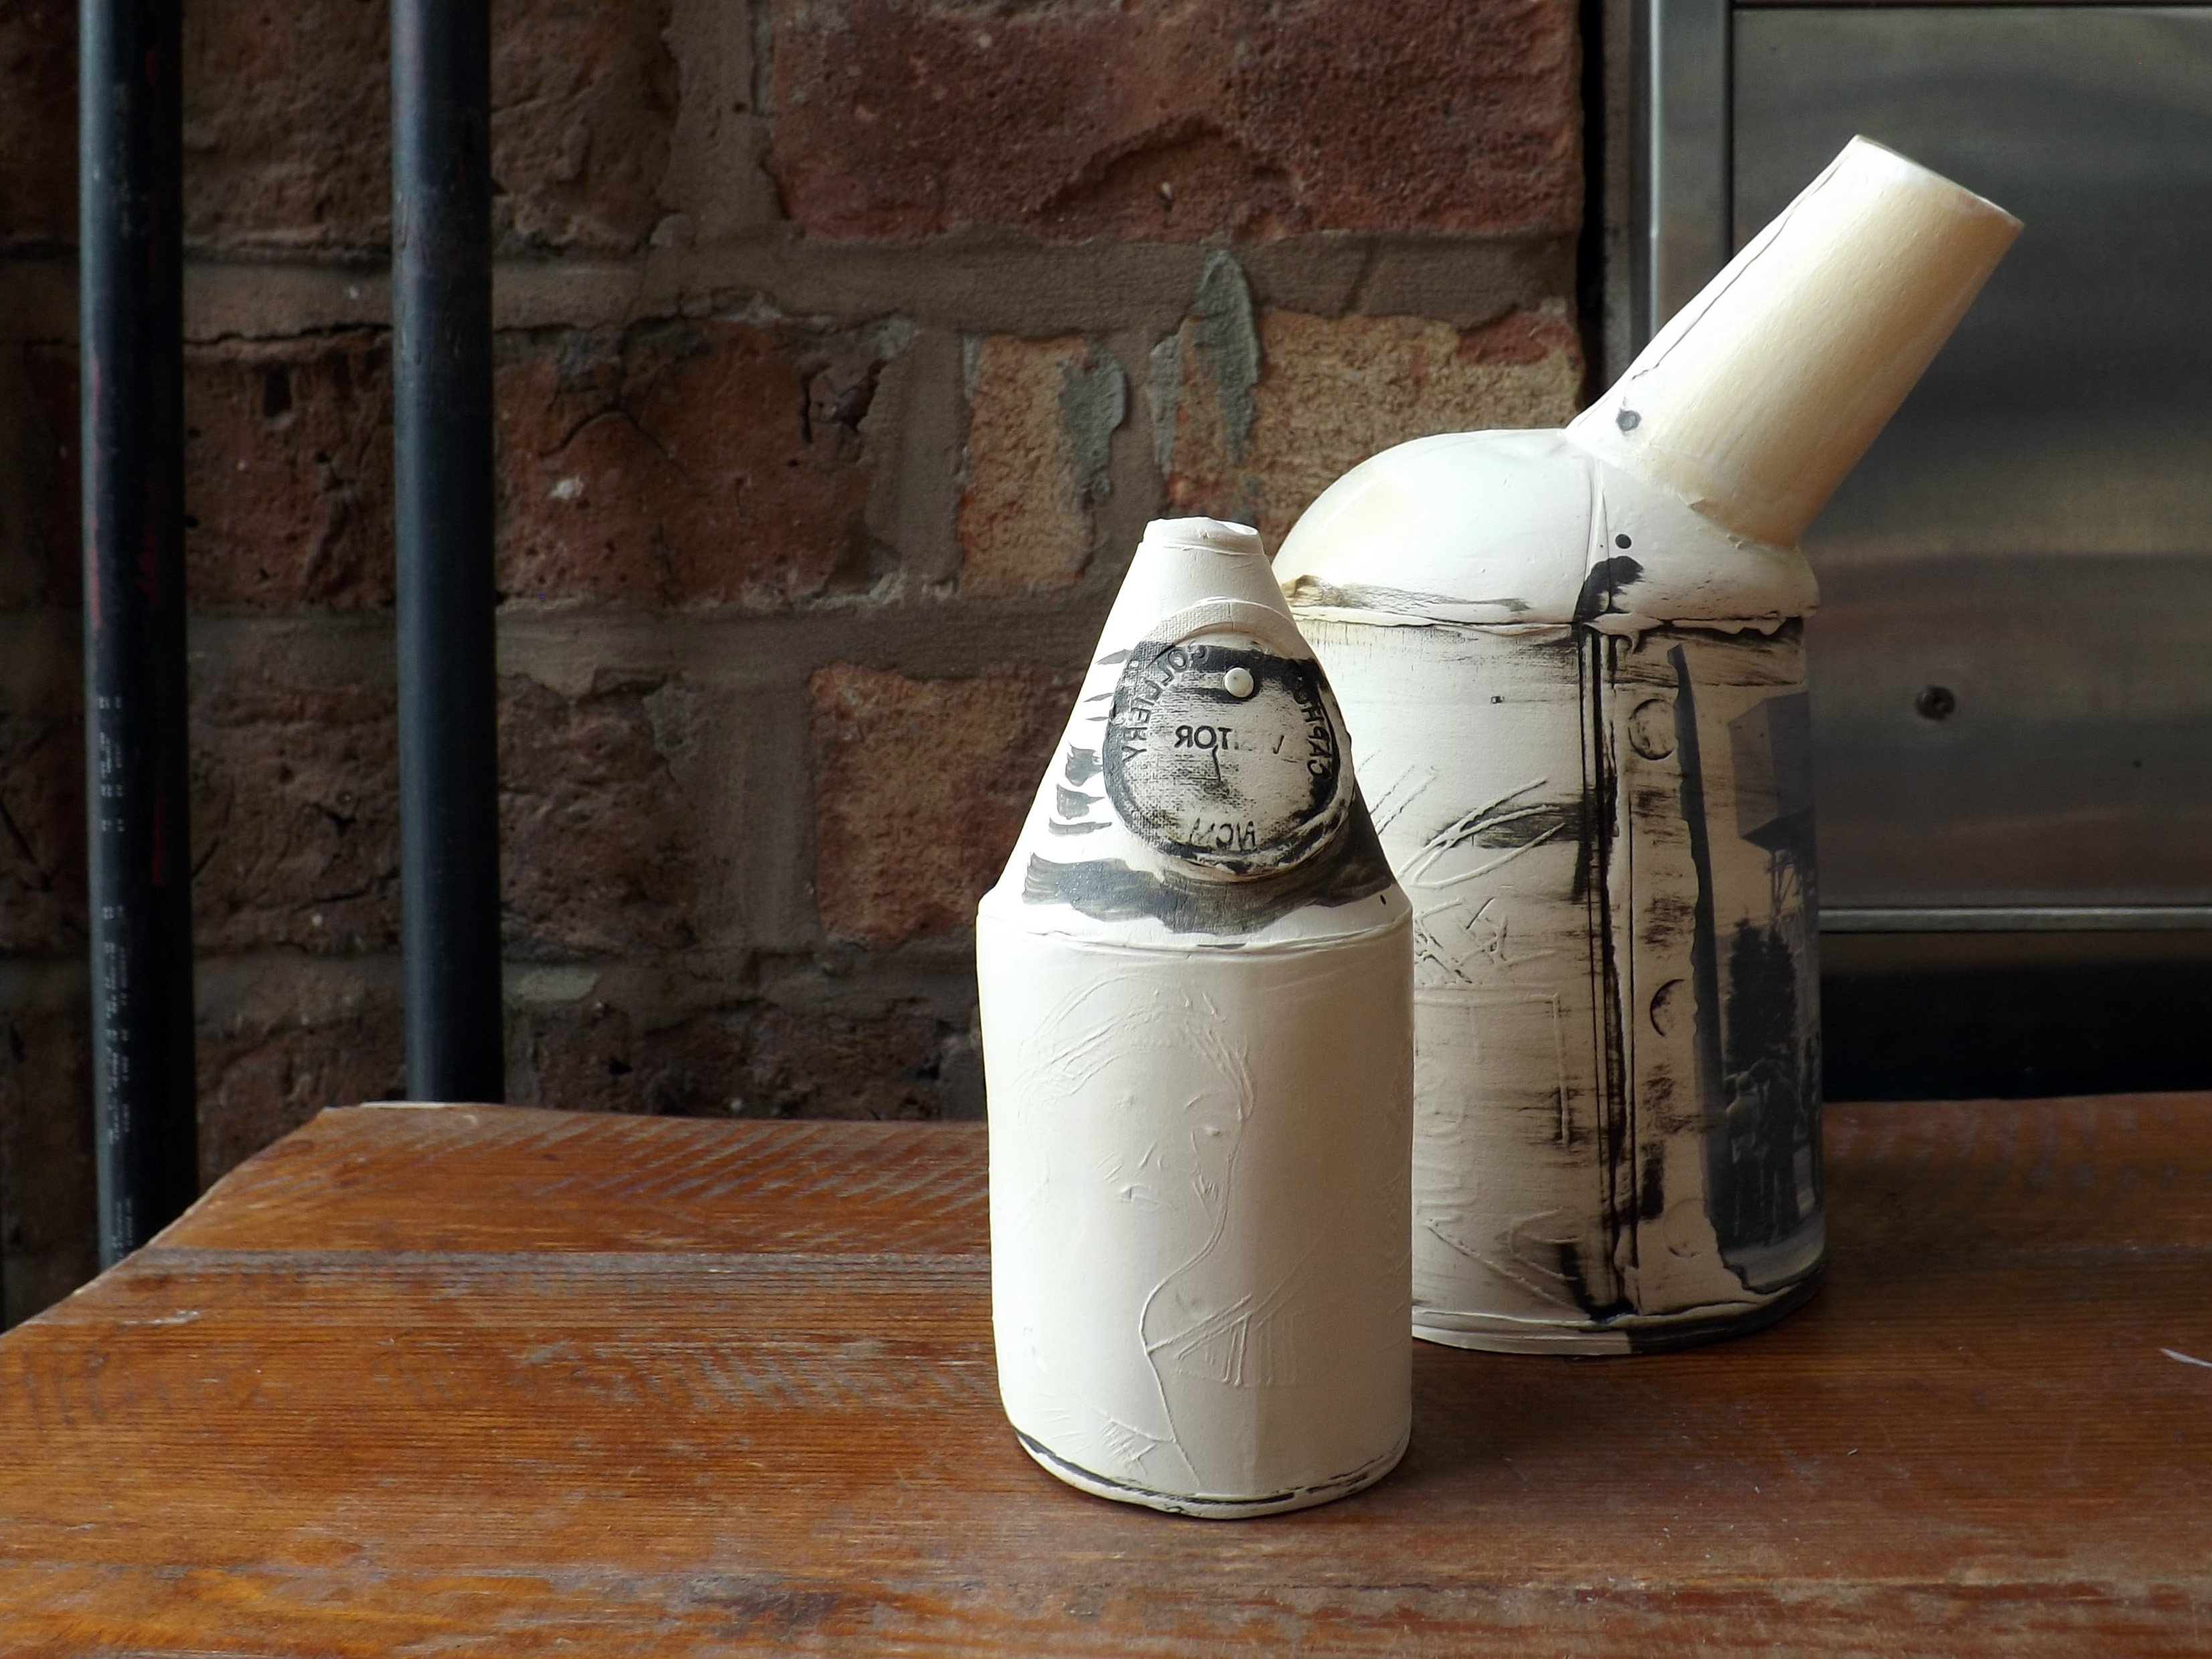 7 Ceramic vessels Stoke-on-Trent